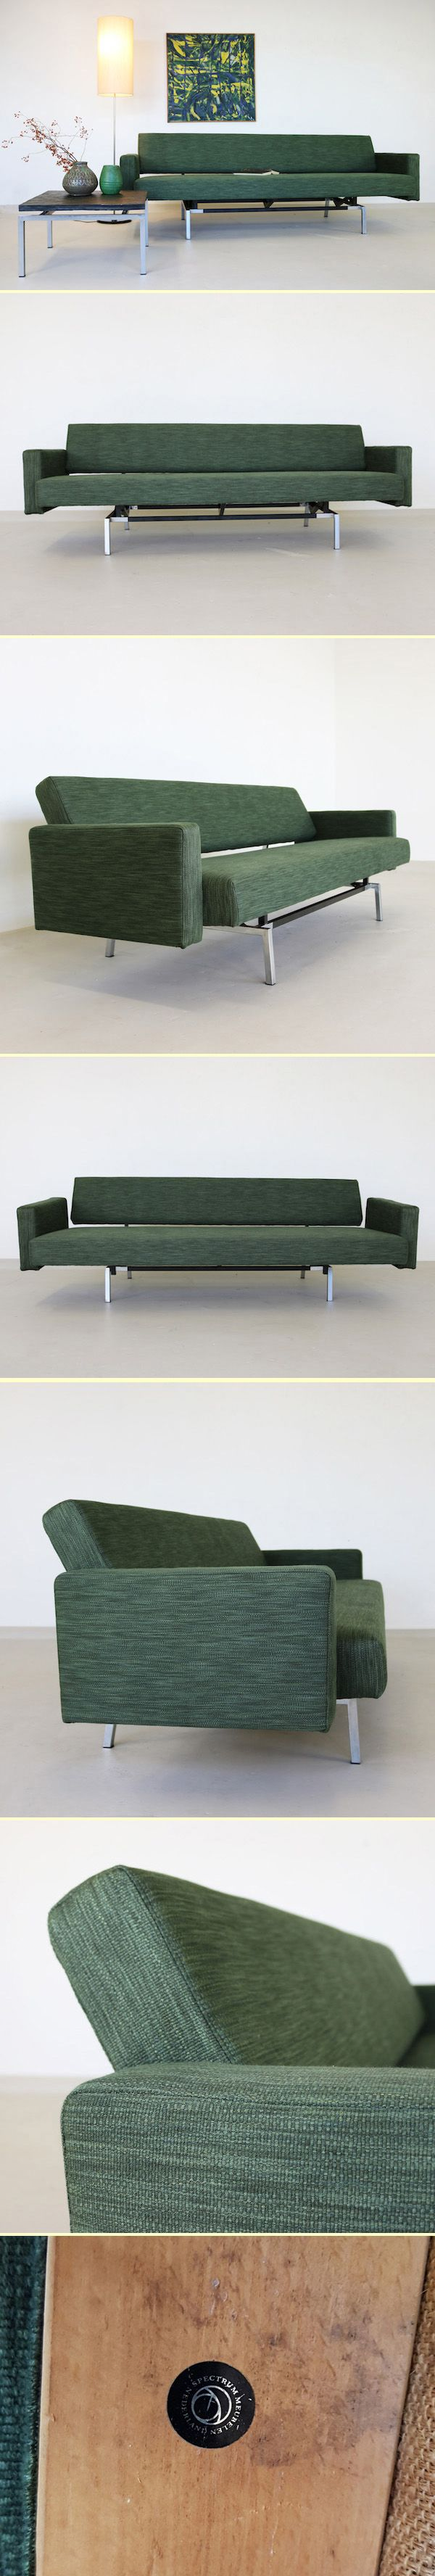 17 best Sofas Daybeds images on Pinterest